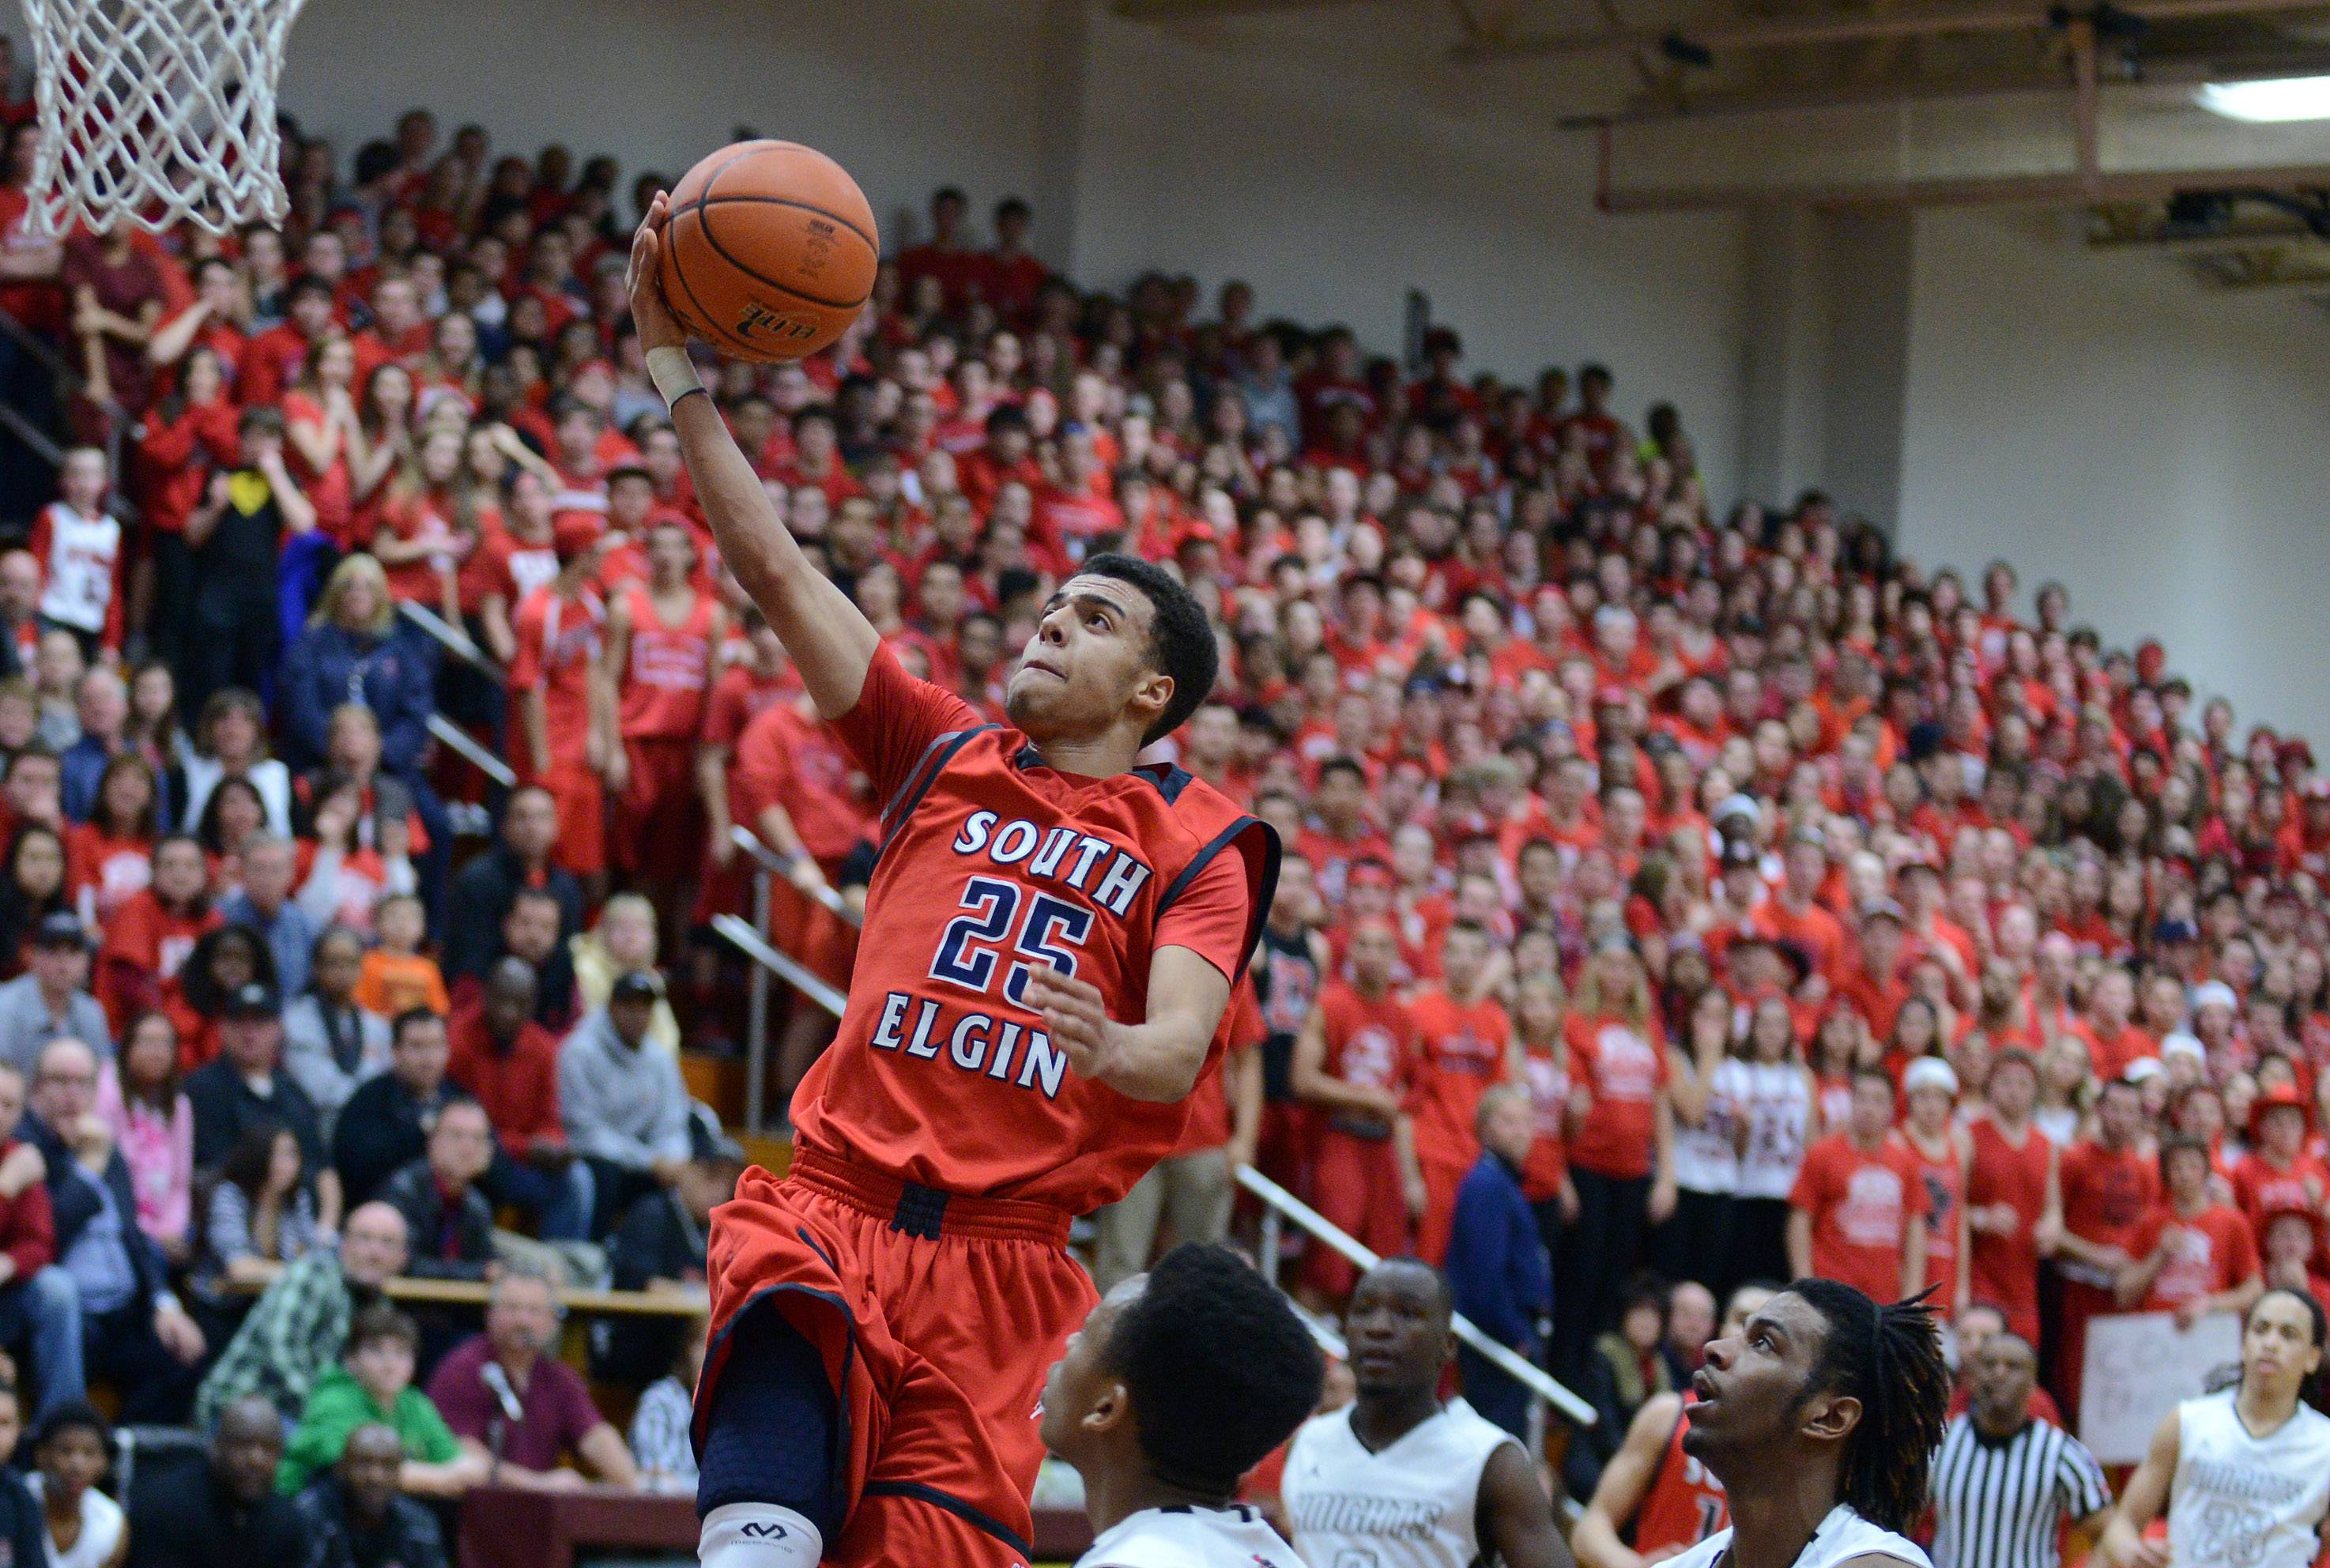 South Elgin's Darius Wells skies above the Rockford Auburn defense to score.